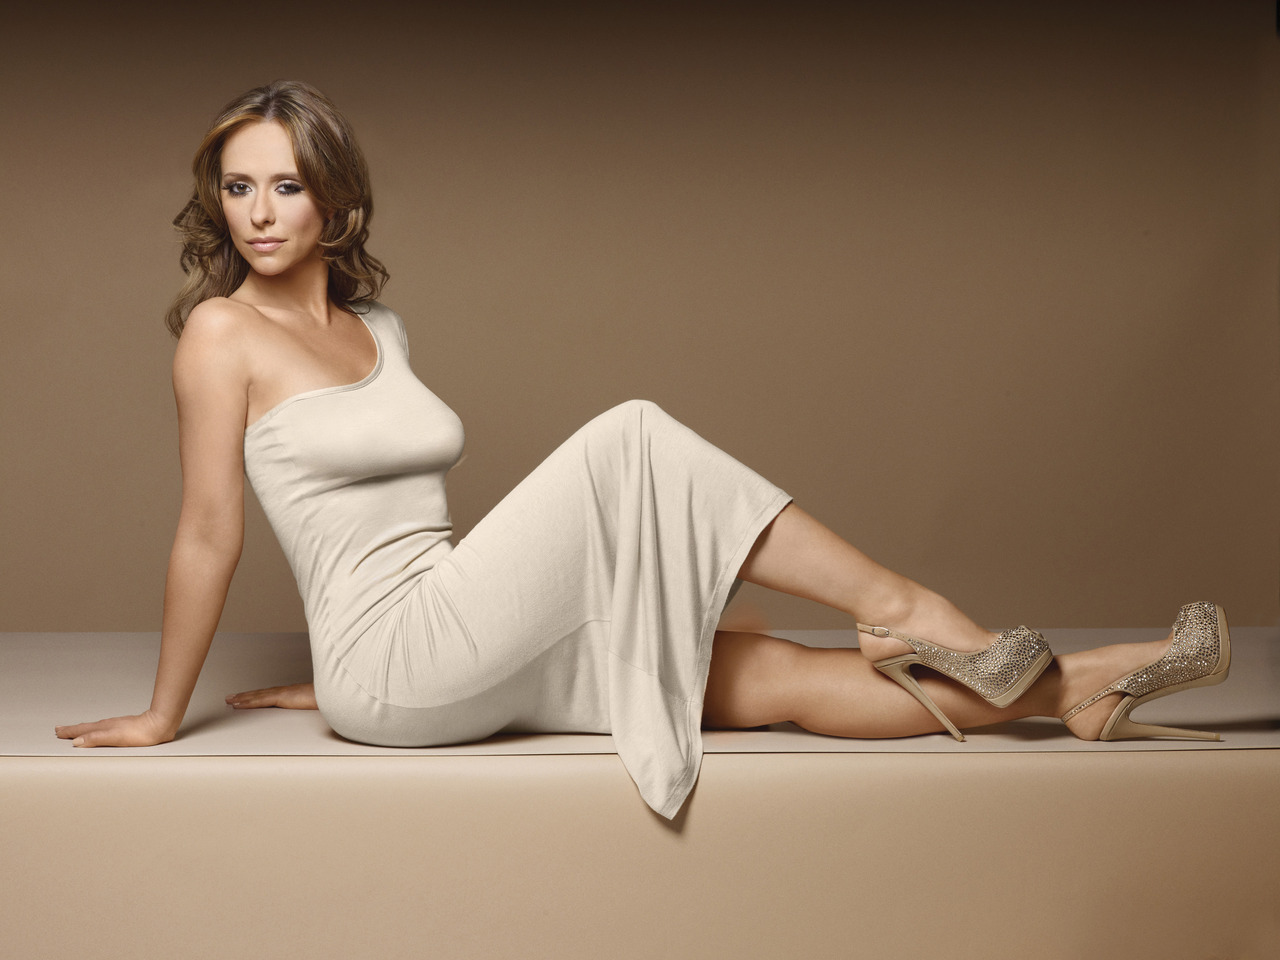 Jennifer Love Hewitt Wallpaper Gallery - WallpaperSafari